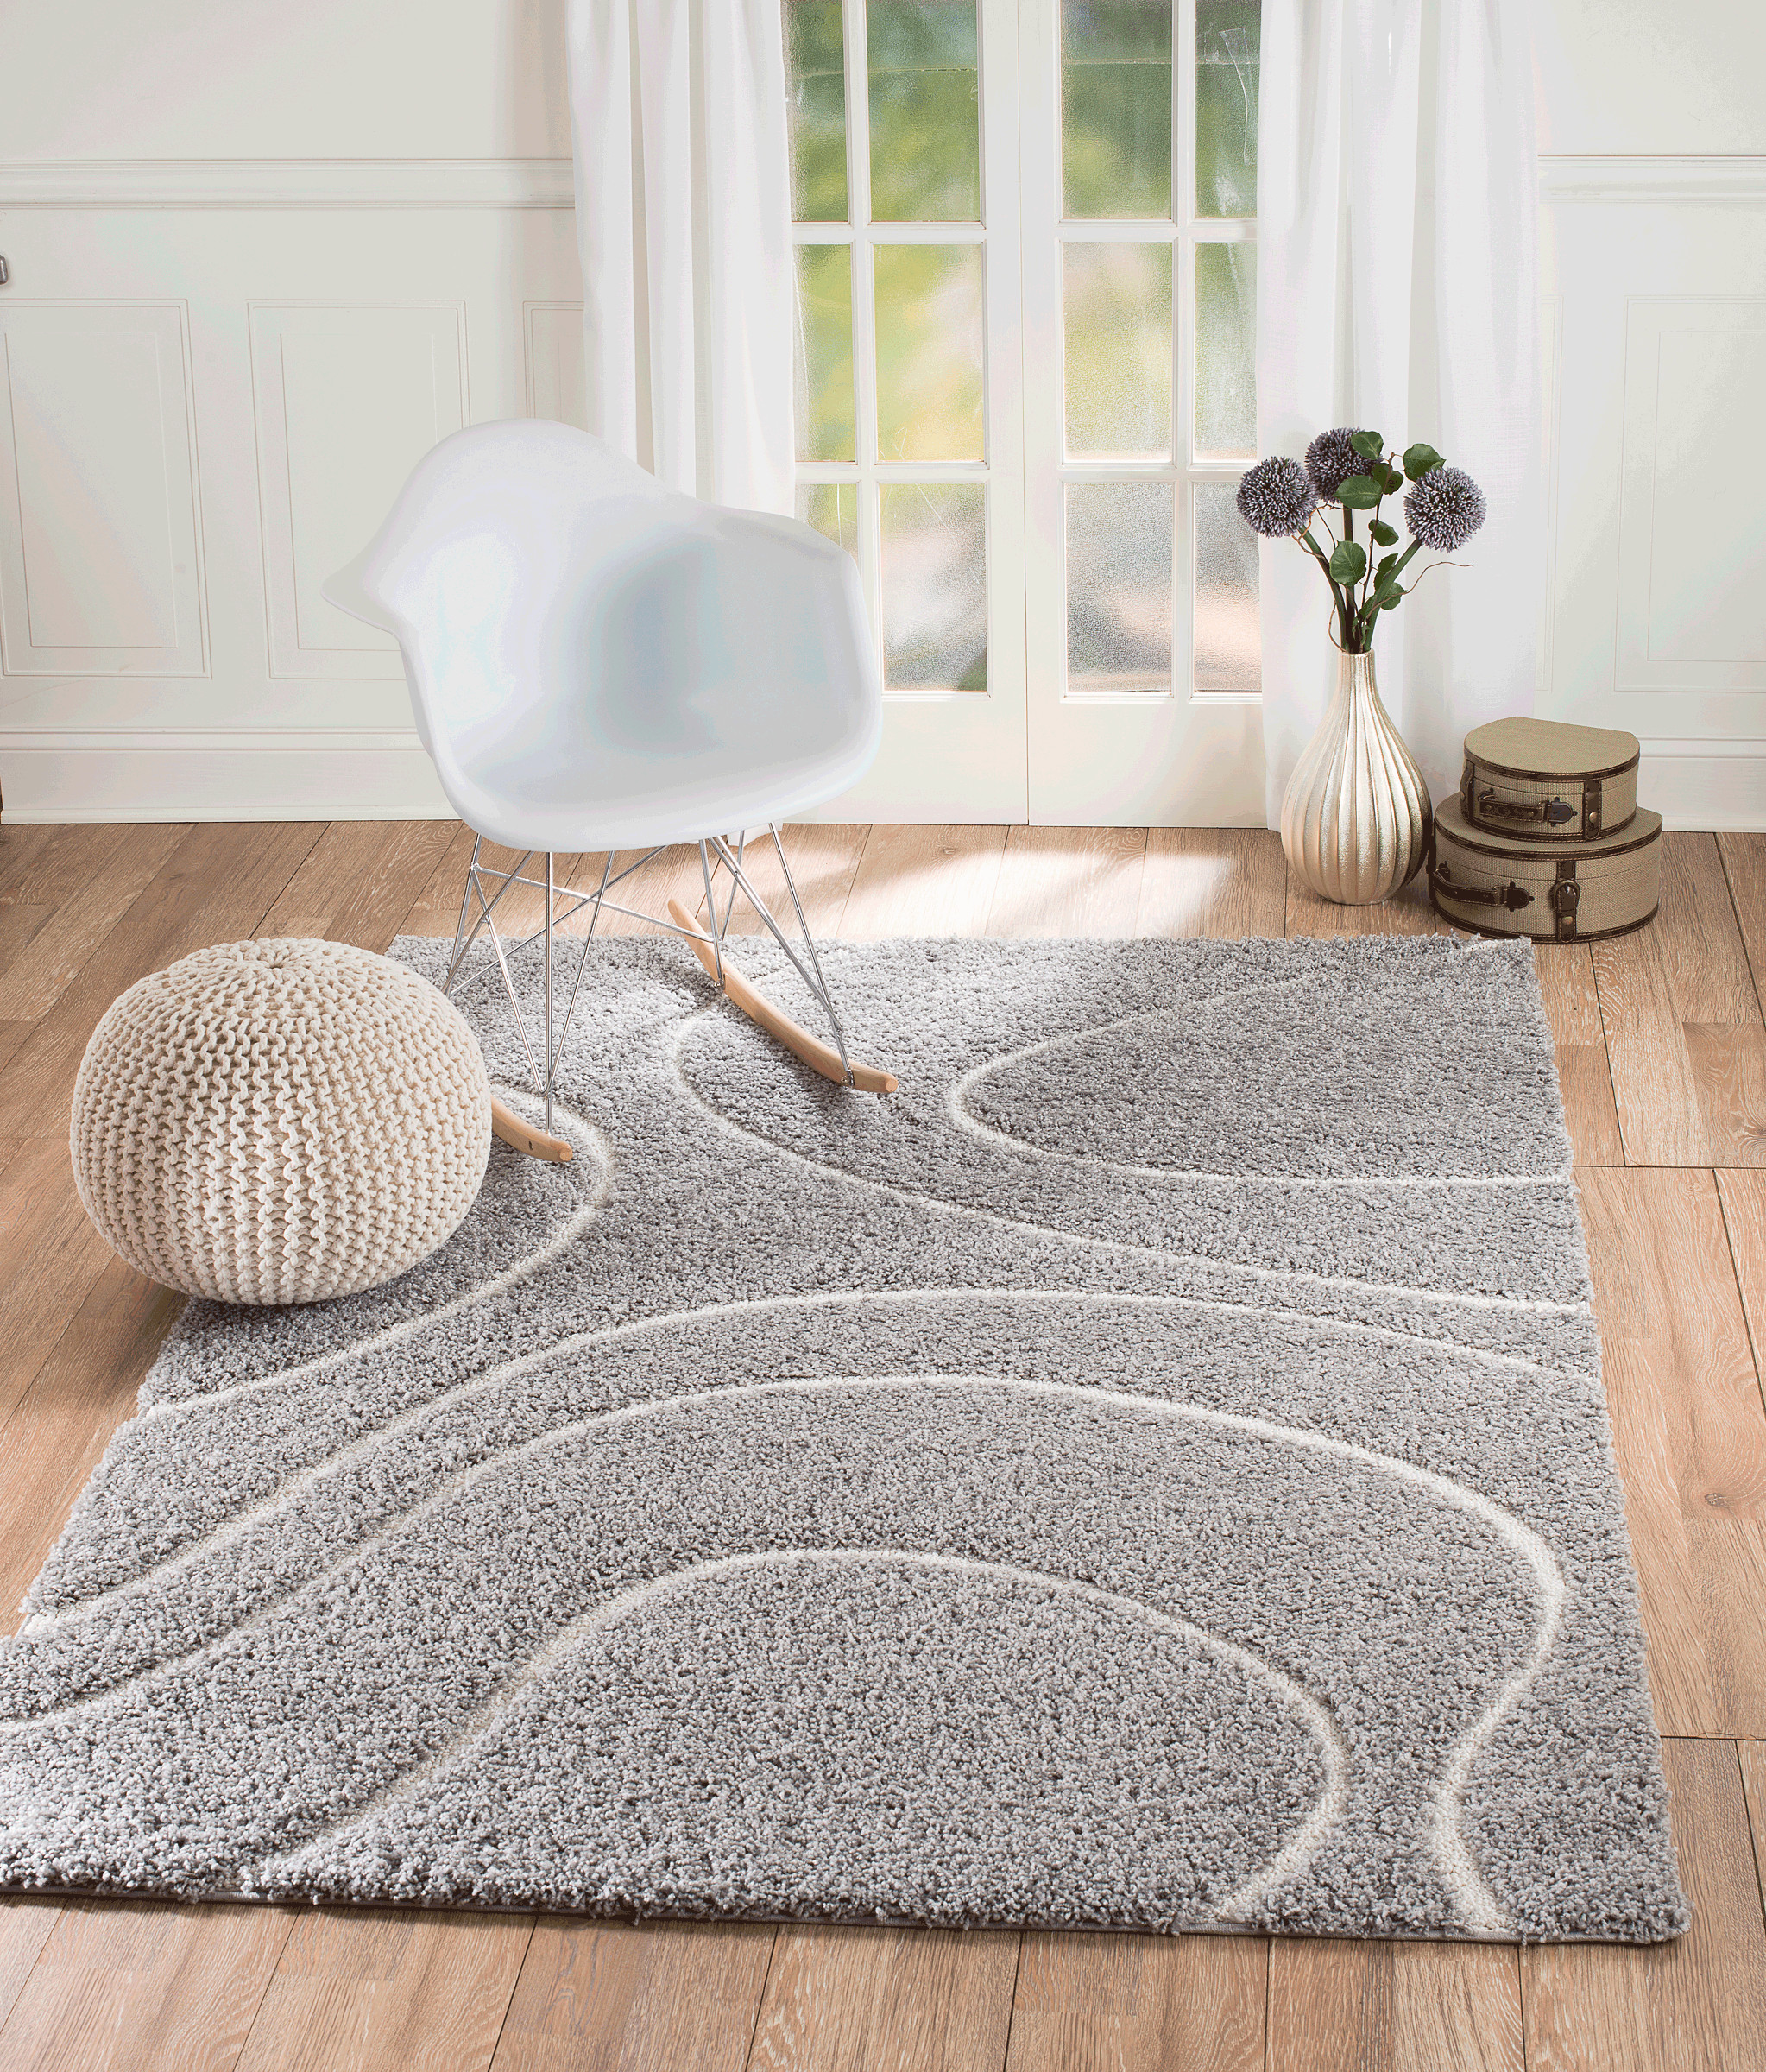 Furry Rugs for Bedroom Unique Lorena Shag 03 Gray Wave Shaggy area Rug area Rugs